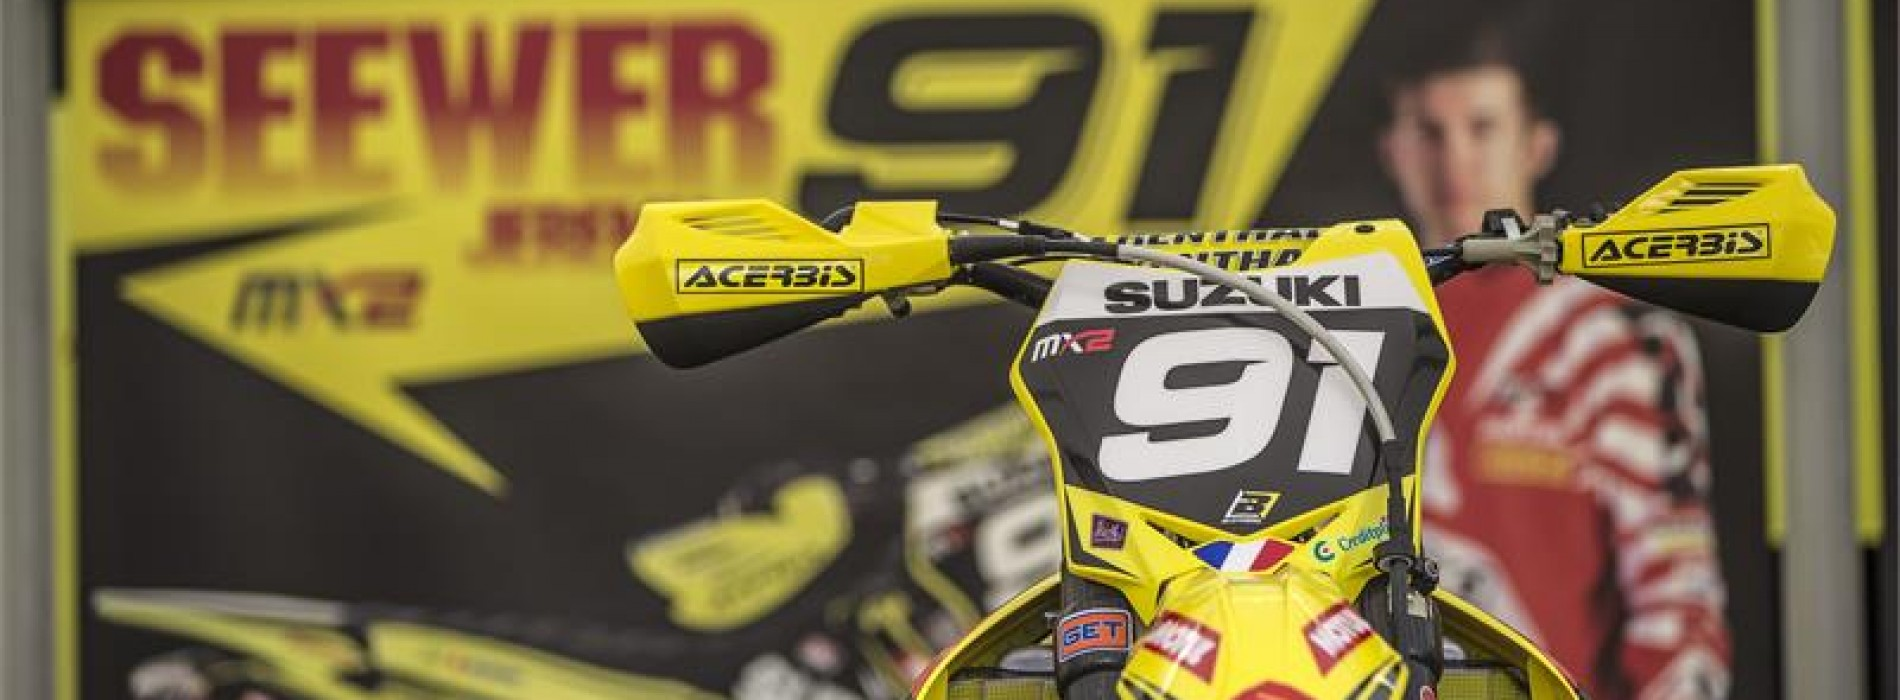 Jeremy Seewer Team Suzuki World MXGP